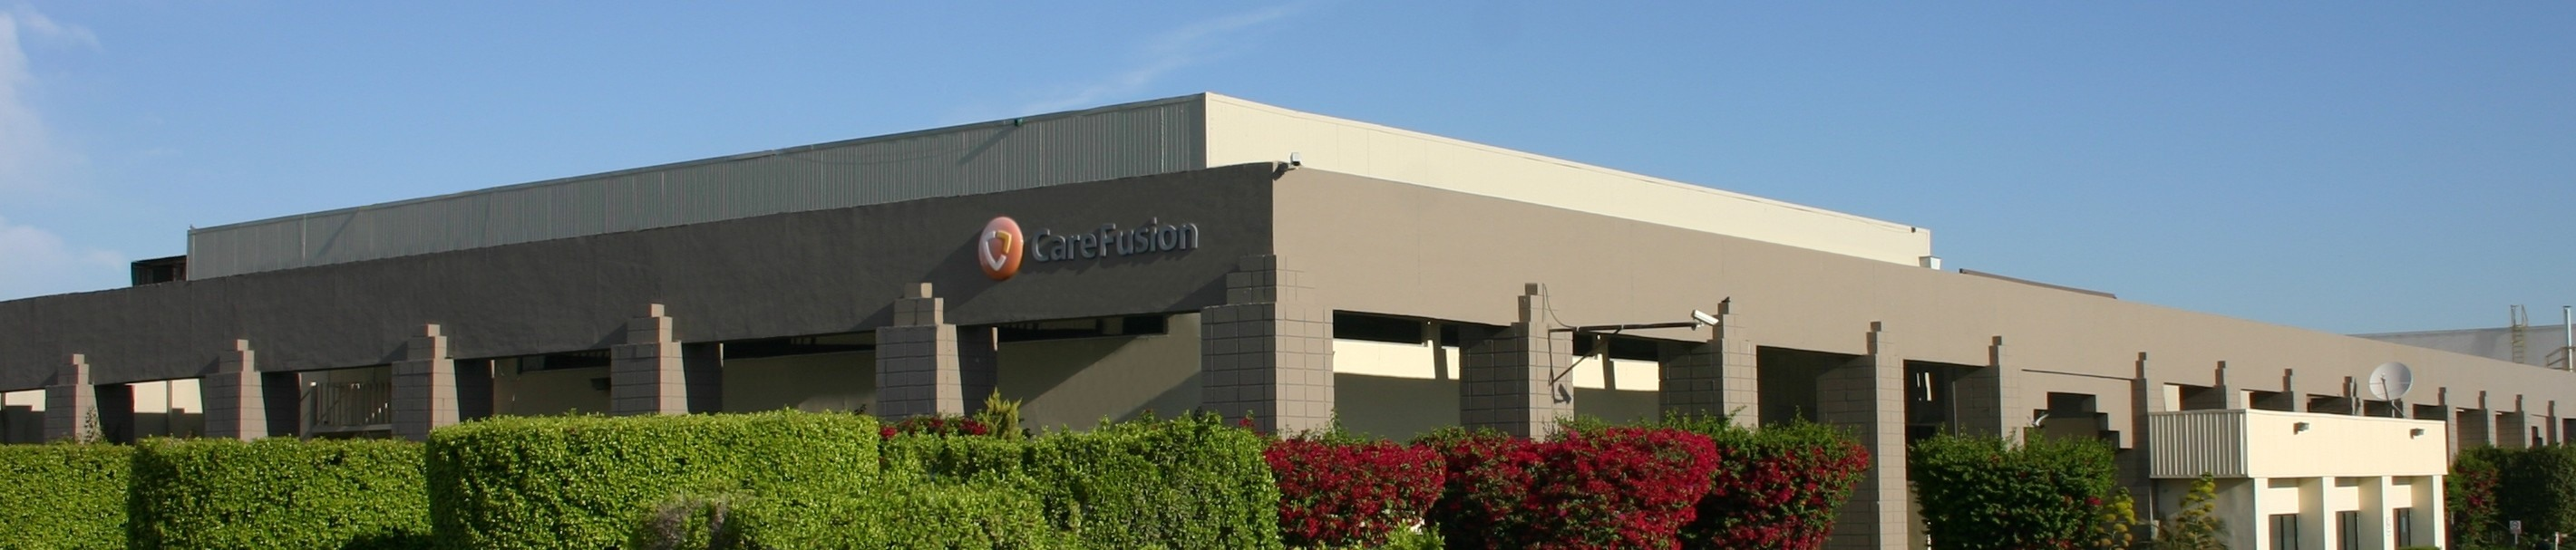 Carefusion Becton Dickinson - PIMSA INDUSTRIAL PARKS IN MEXICO